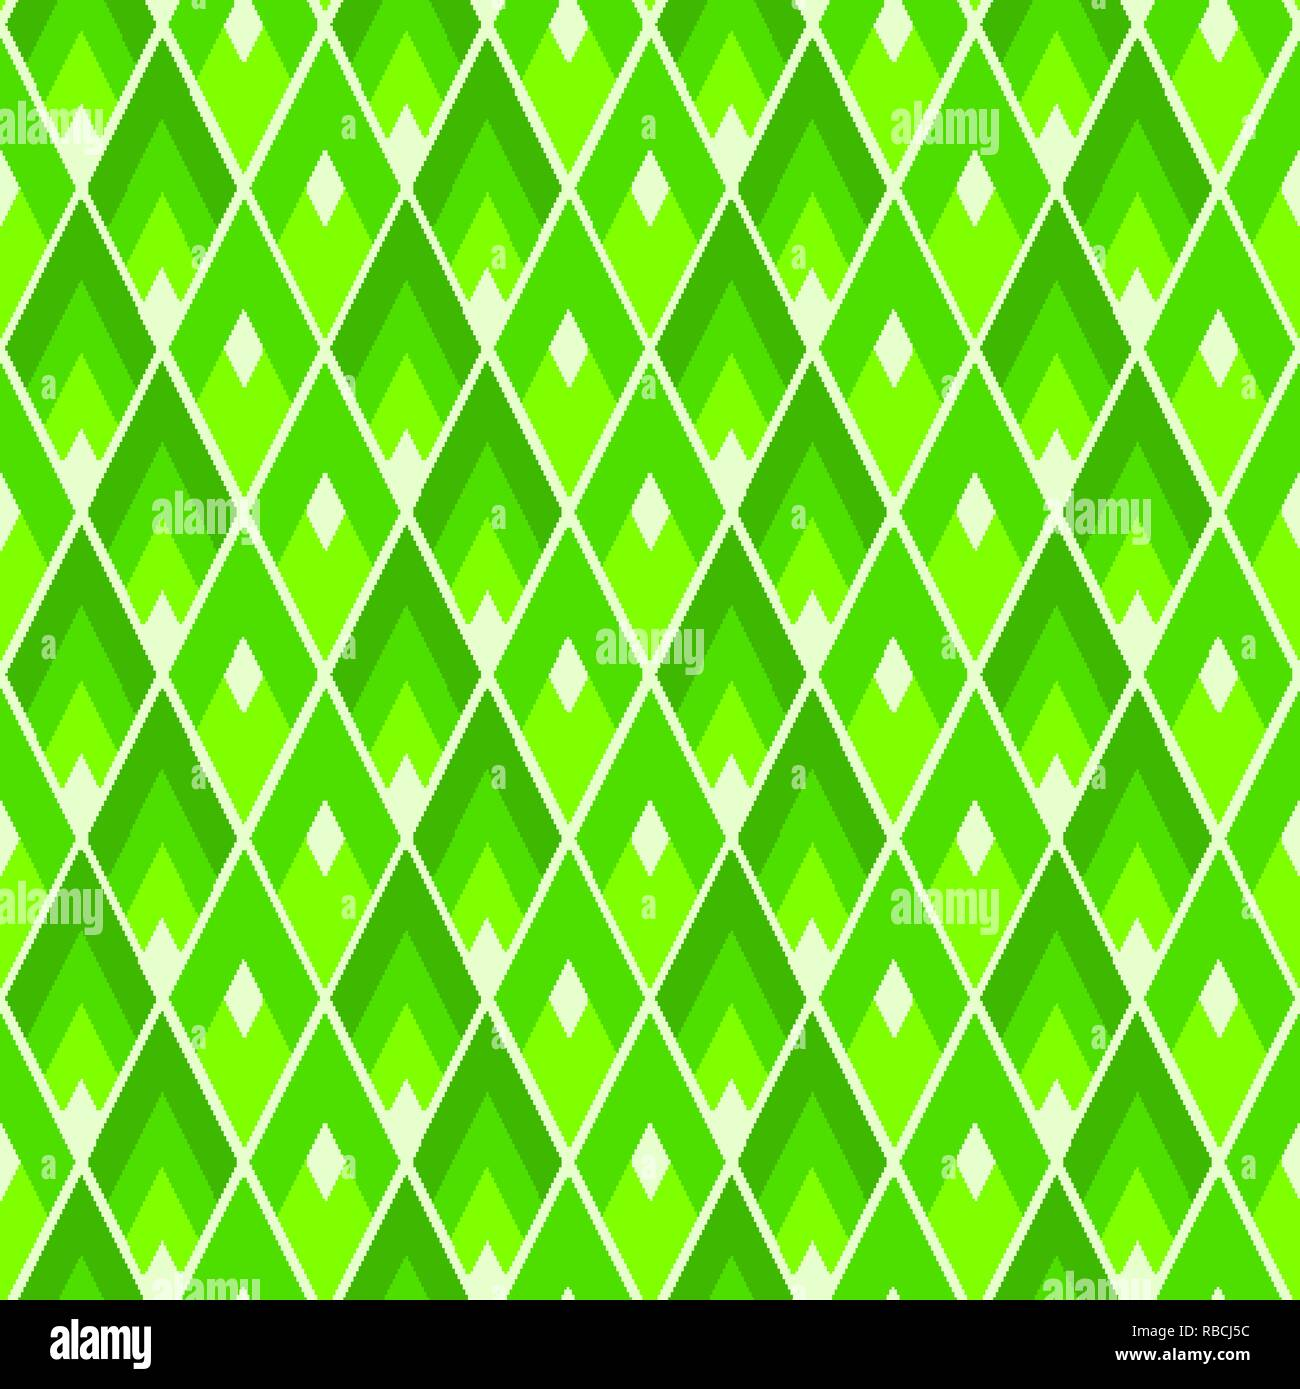 Lozenges seamless pattern. Modern UFO green colored geometric tile texture - Stock Vector